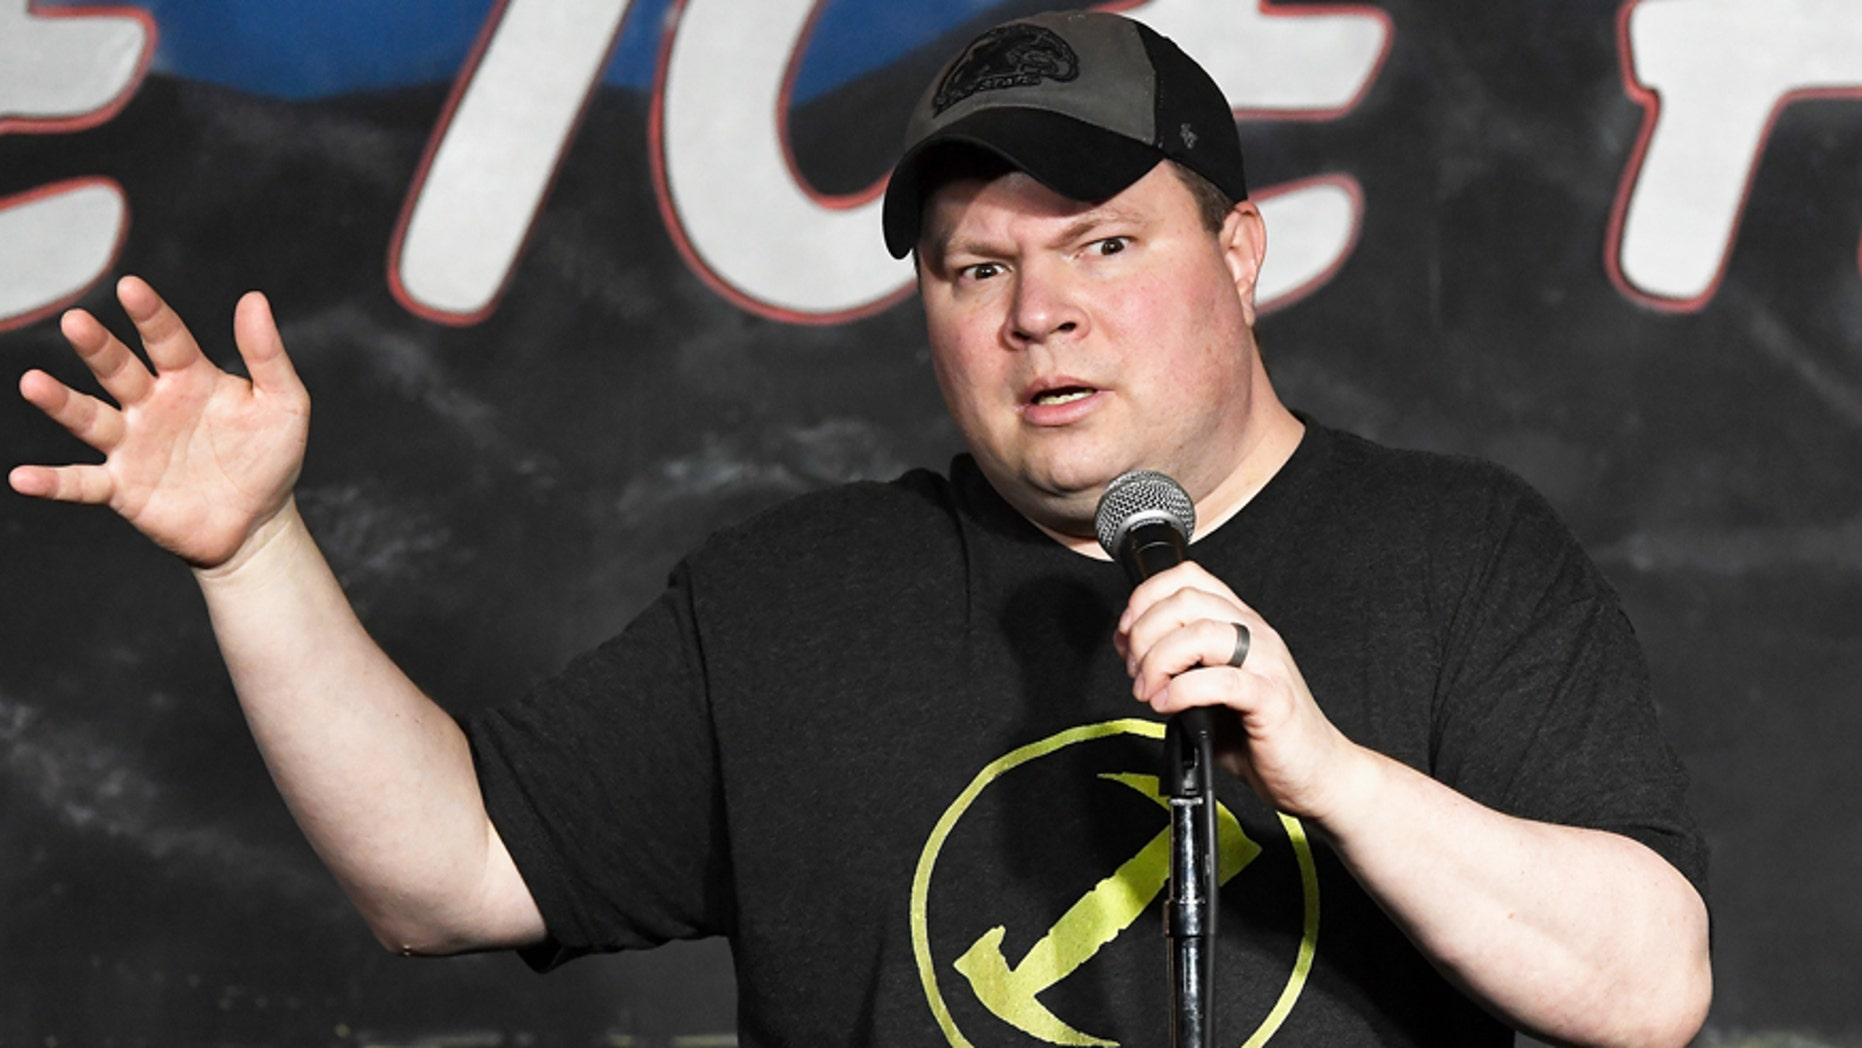 Comedian John Caparulo performs during his appearance at The Ice House Comedy Club on February 11, 2017 in Pasadena, California.